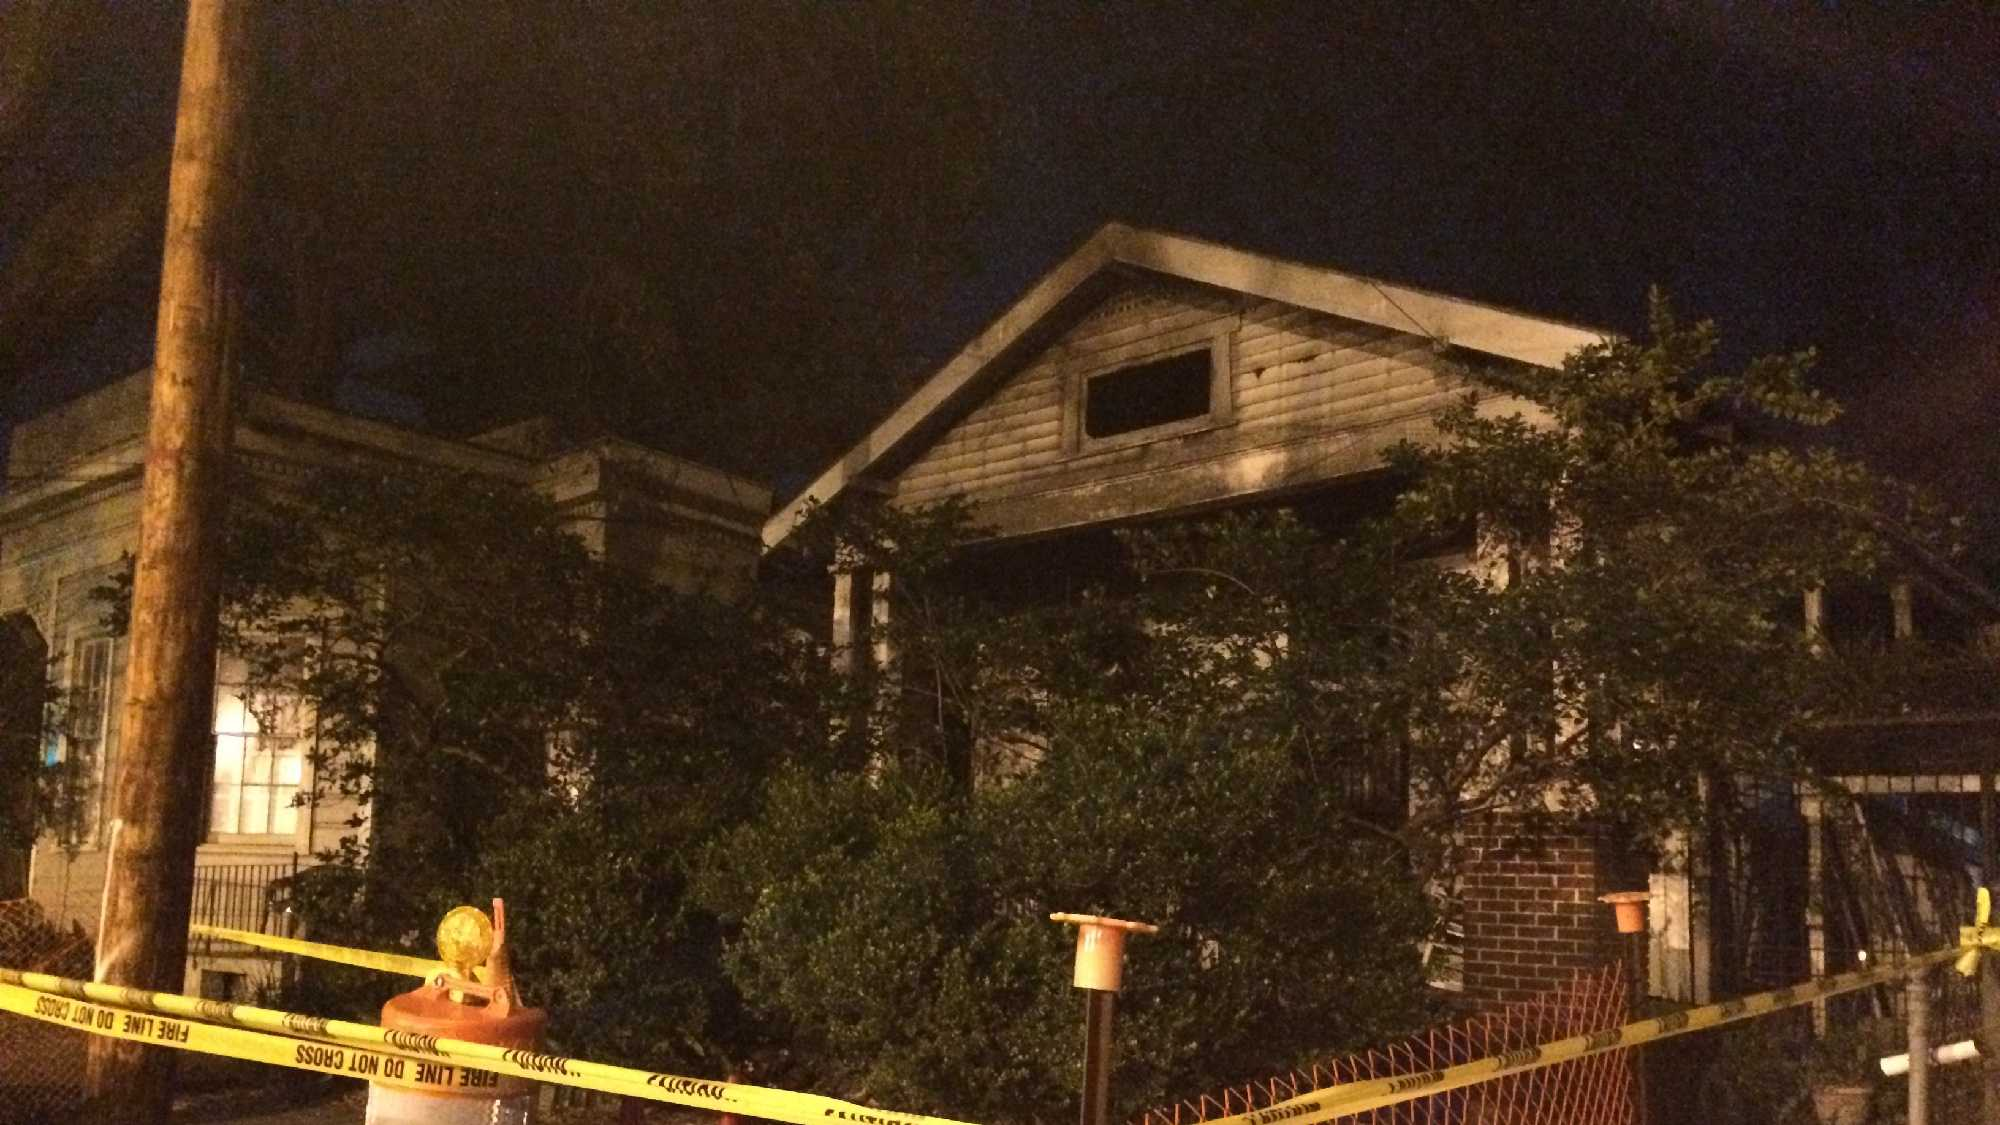 The 4-alarm fire started in this 5-unit rental and spread to the single-family home nearby.